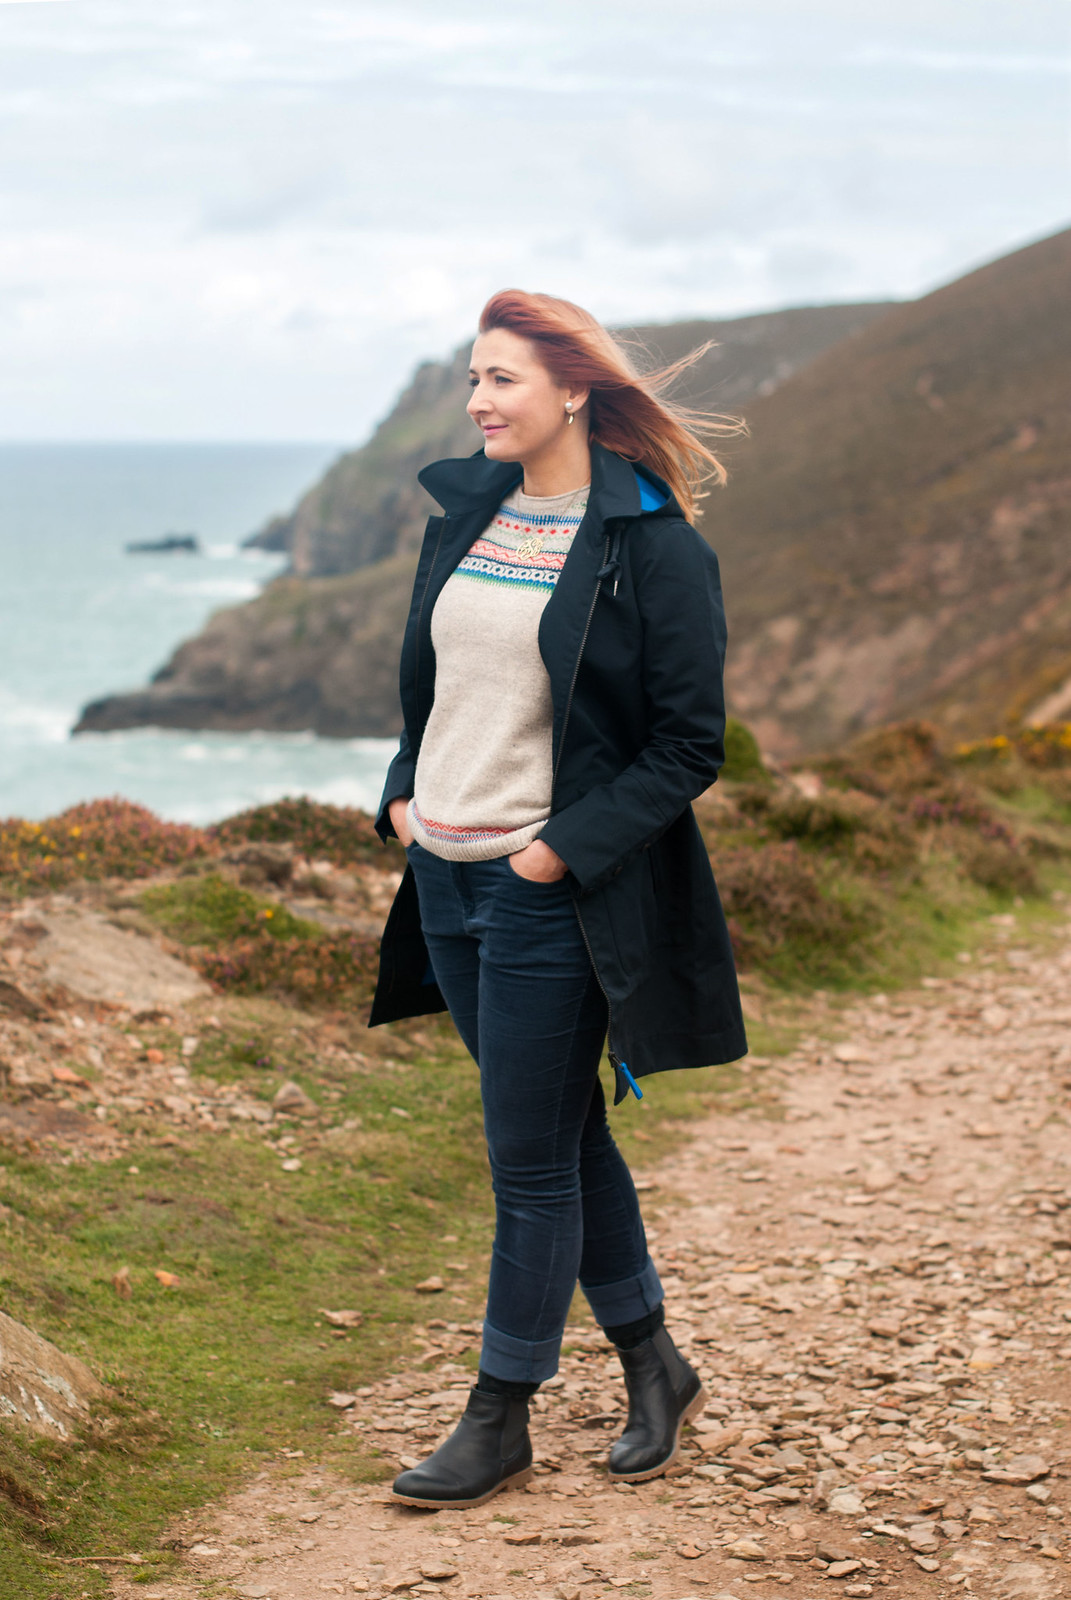 Stylish dressing for a rainy day - wearing AW17 Seasalt Cornwall in St Agnes, Cornwall: Longline navy raincoat  grey Fair Isle sweater jumper  blue corduroy trousers  navy Chelsea boots | Not Dressed As Lamb, over 40 style